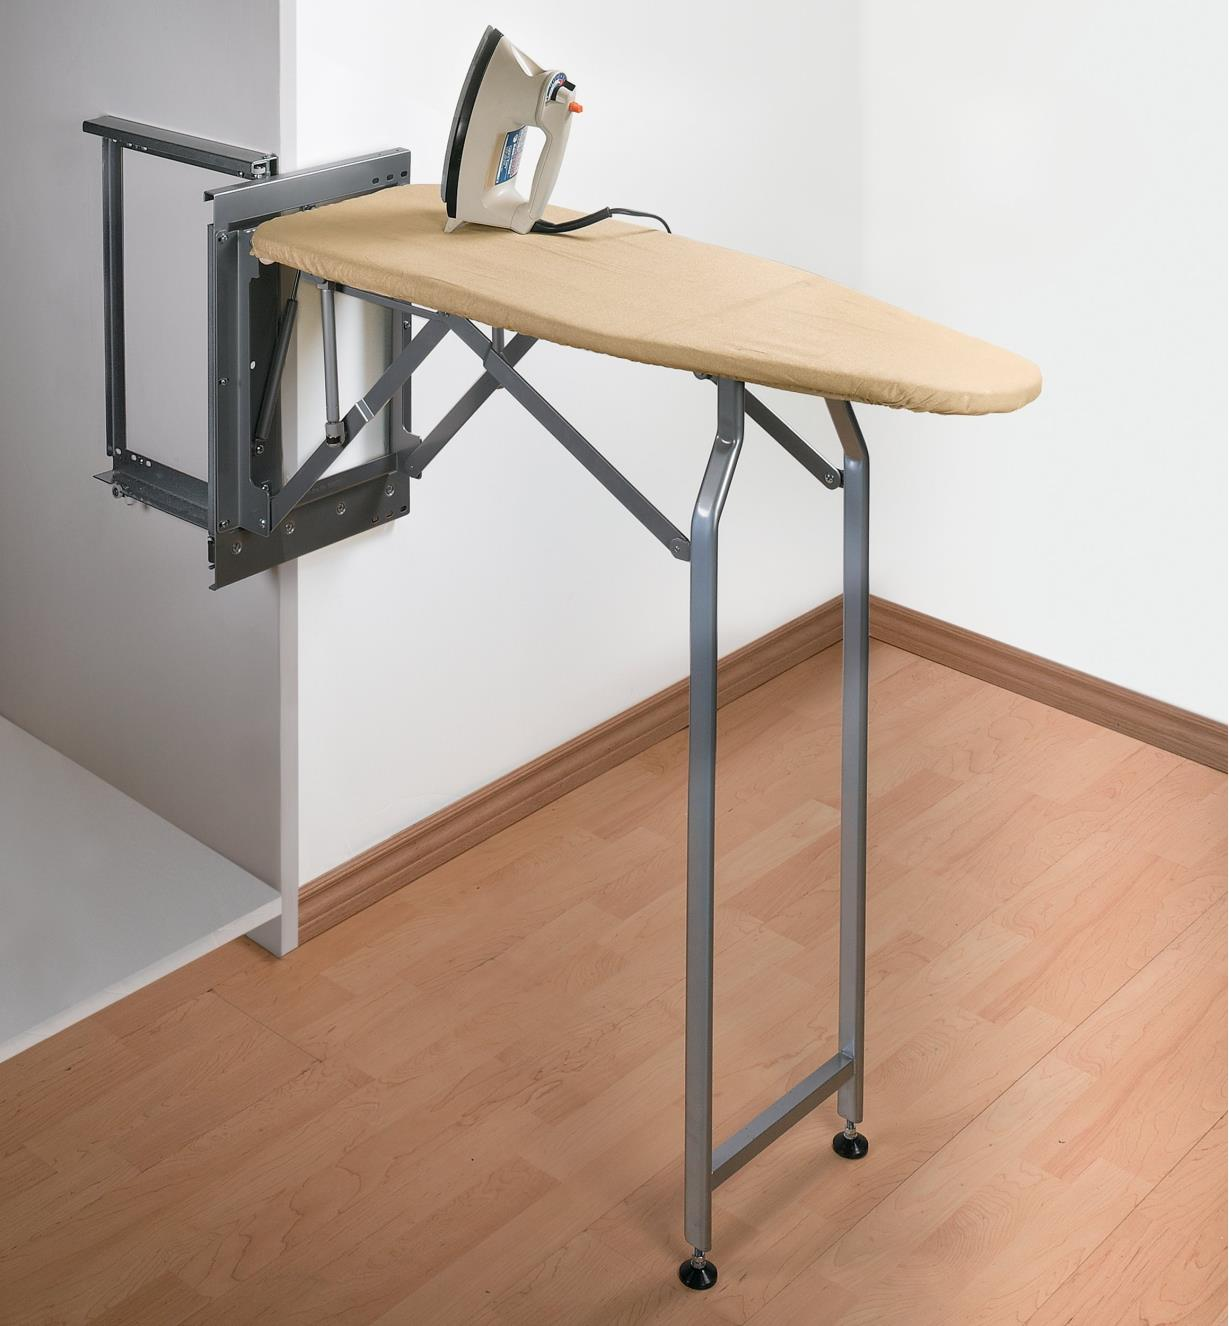 Pull-Out Ironing Board in lowered position, resting on its hinged legs